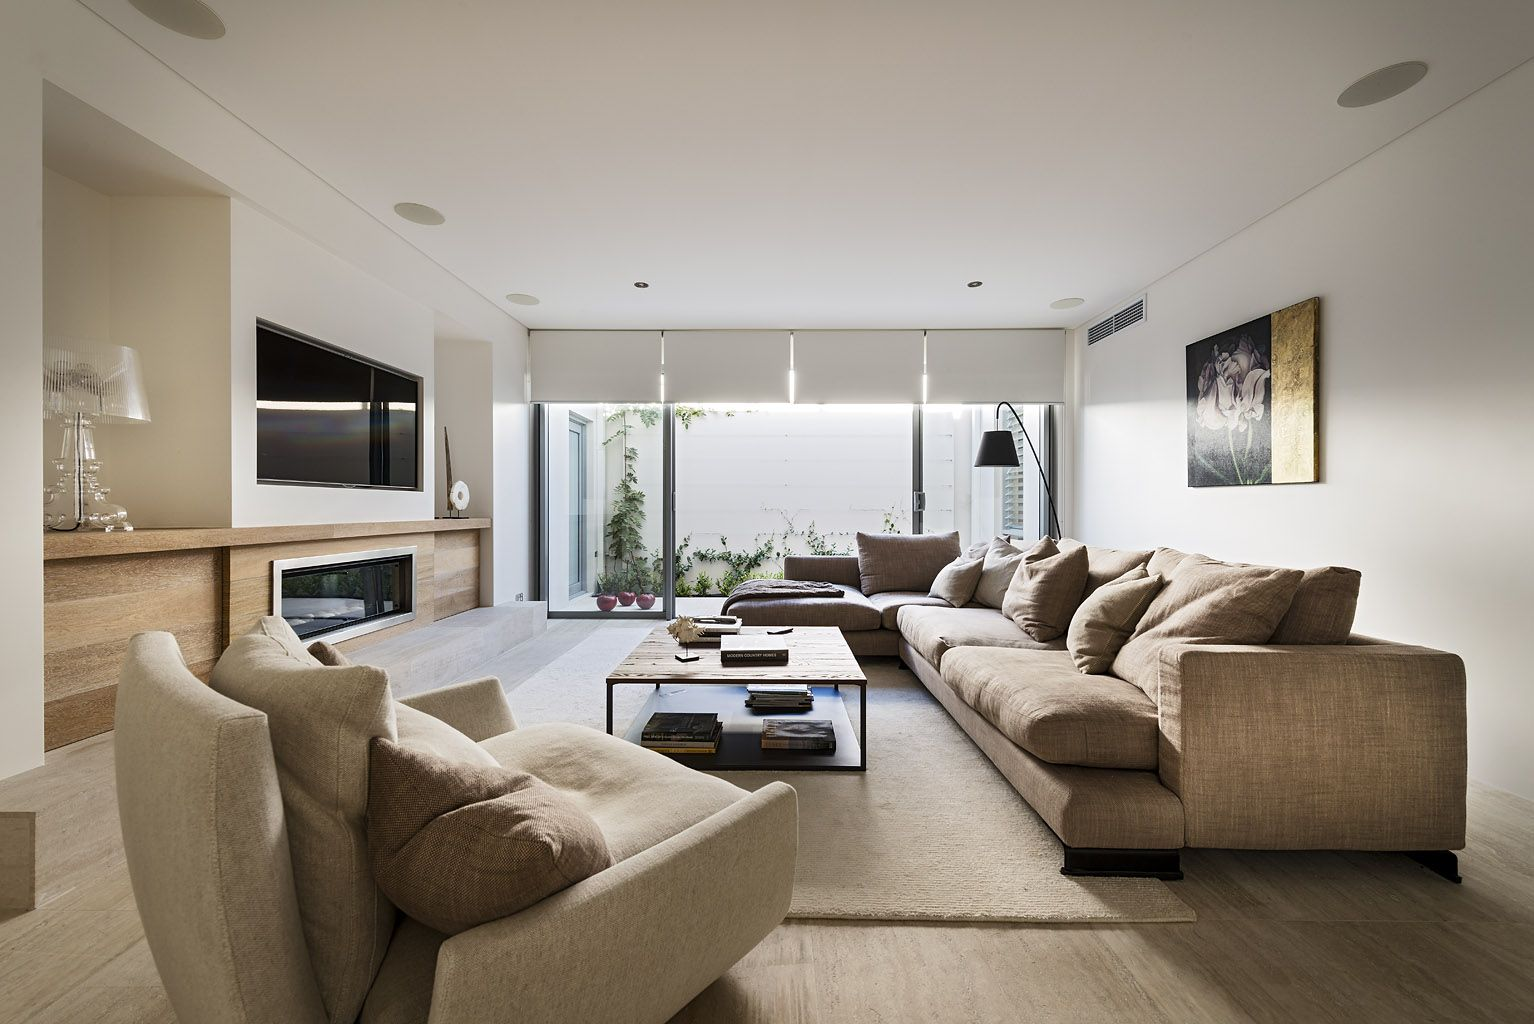 Swell Homes Perth Greensmart Builder | LIVING | Pinterest